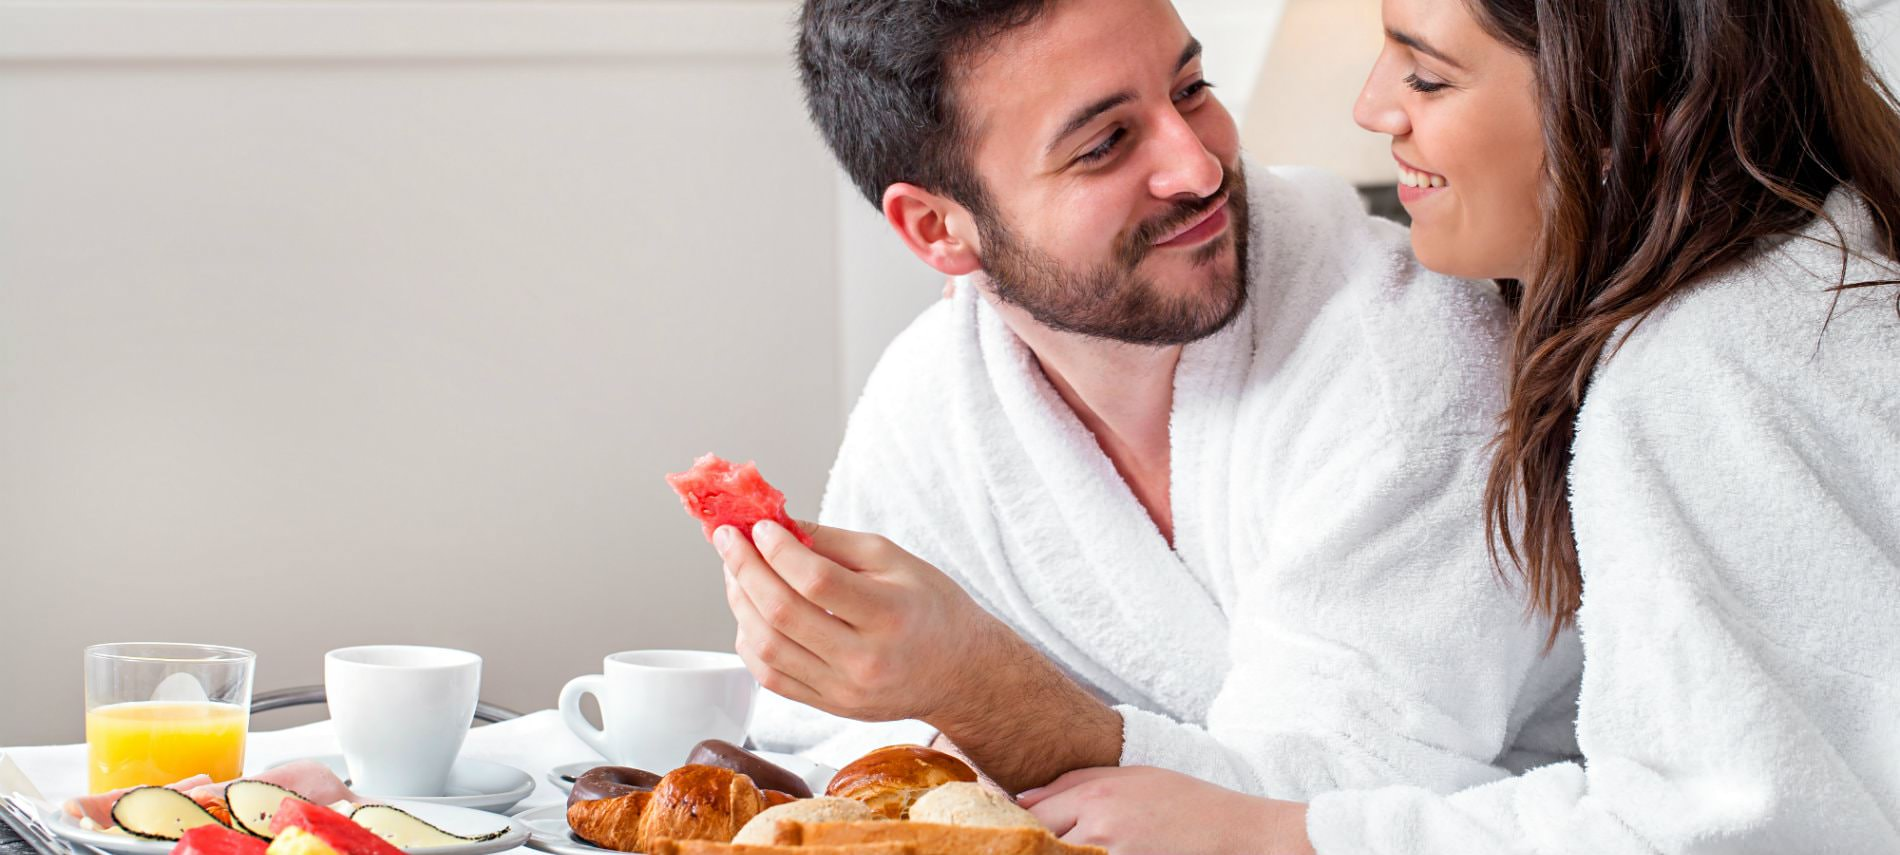 Brown haired man and woman smiling, wearing white terry robes, eating breakfast